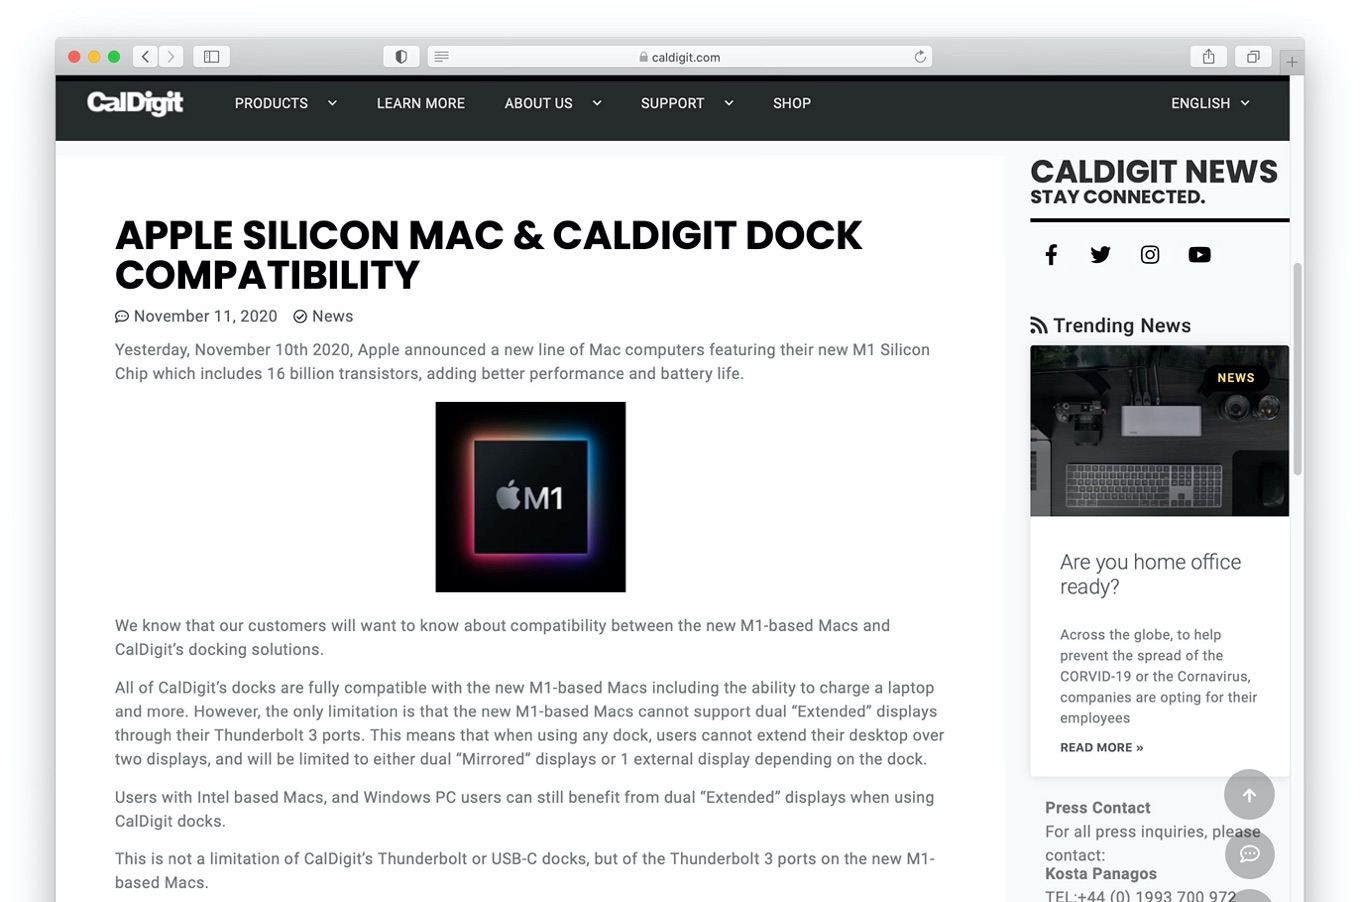 Apple Silicon Mac & CalDigit Dock Compatibility